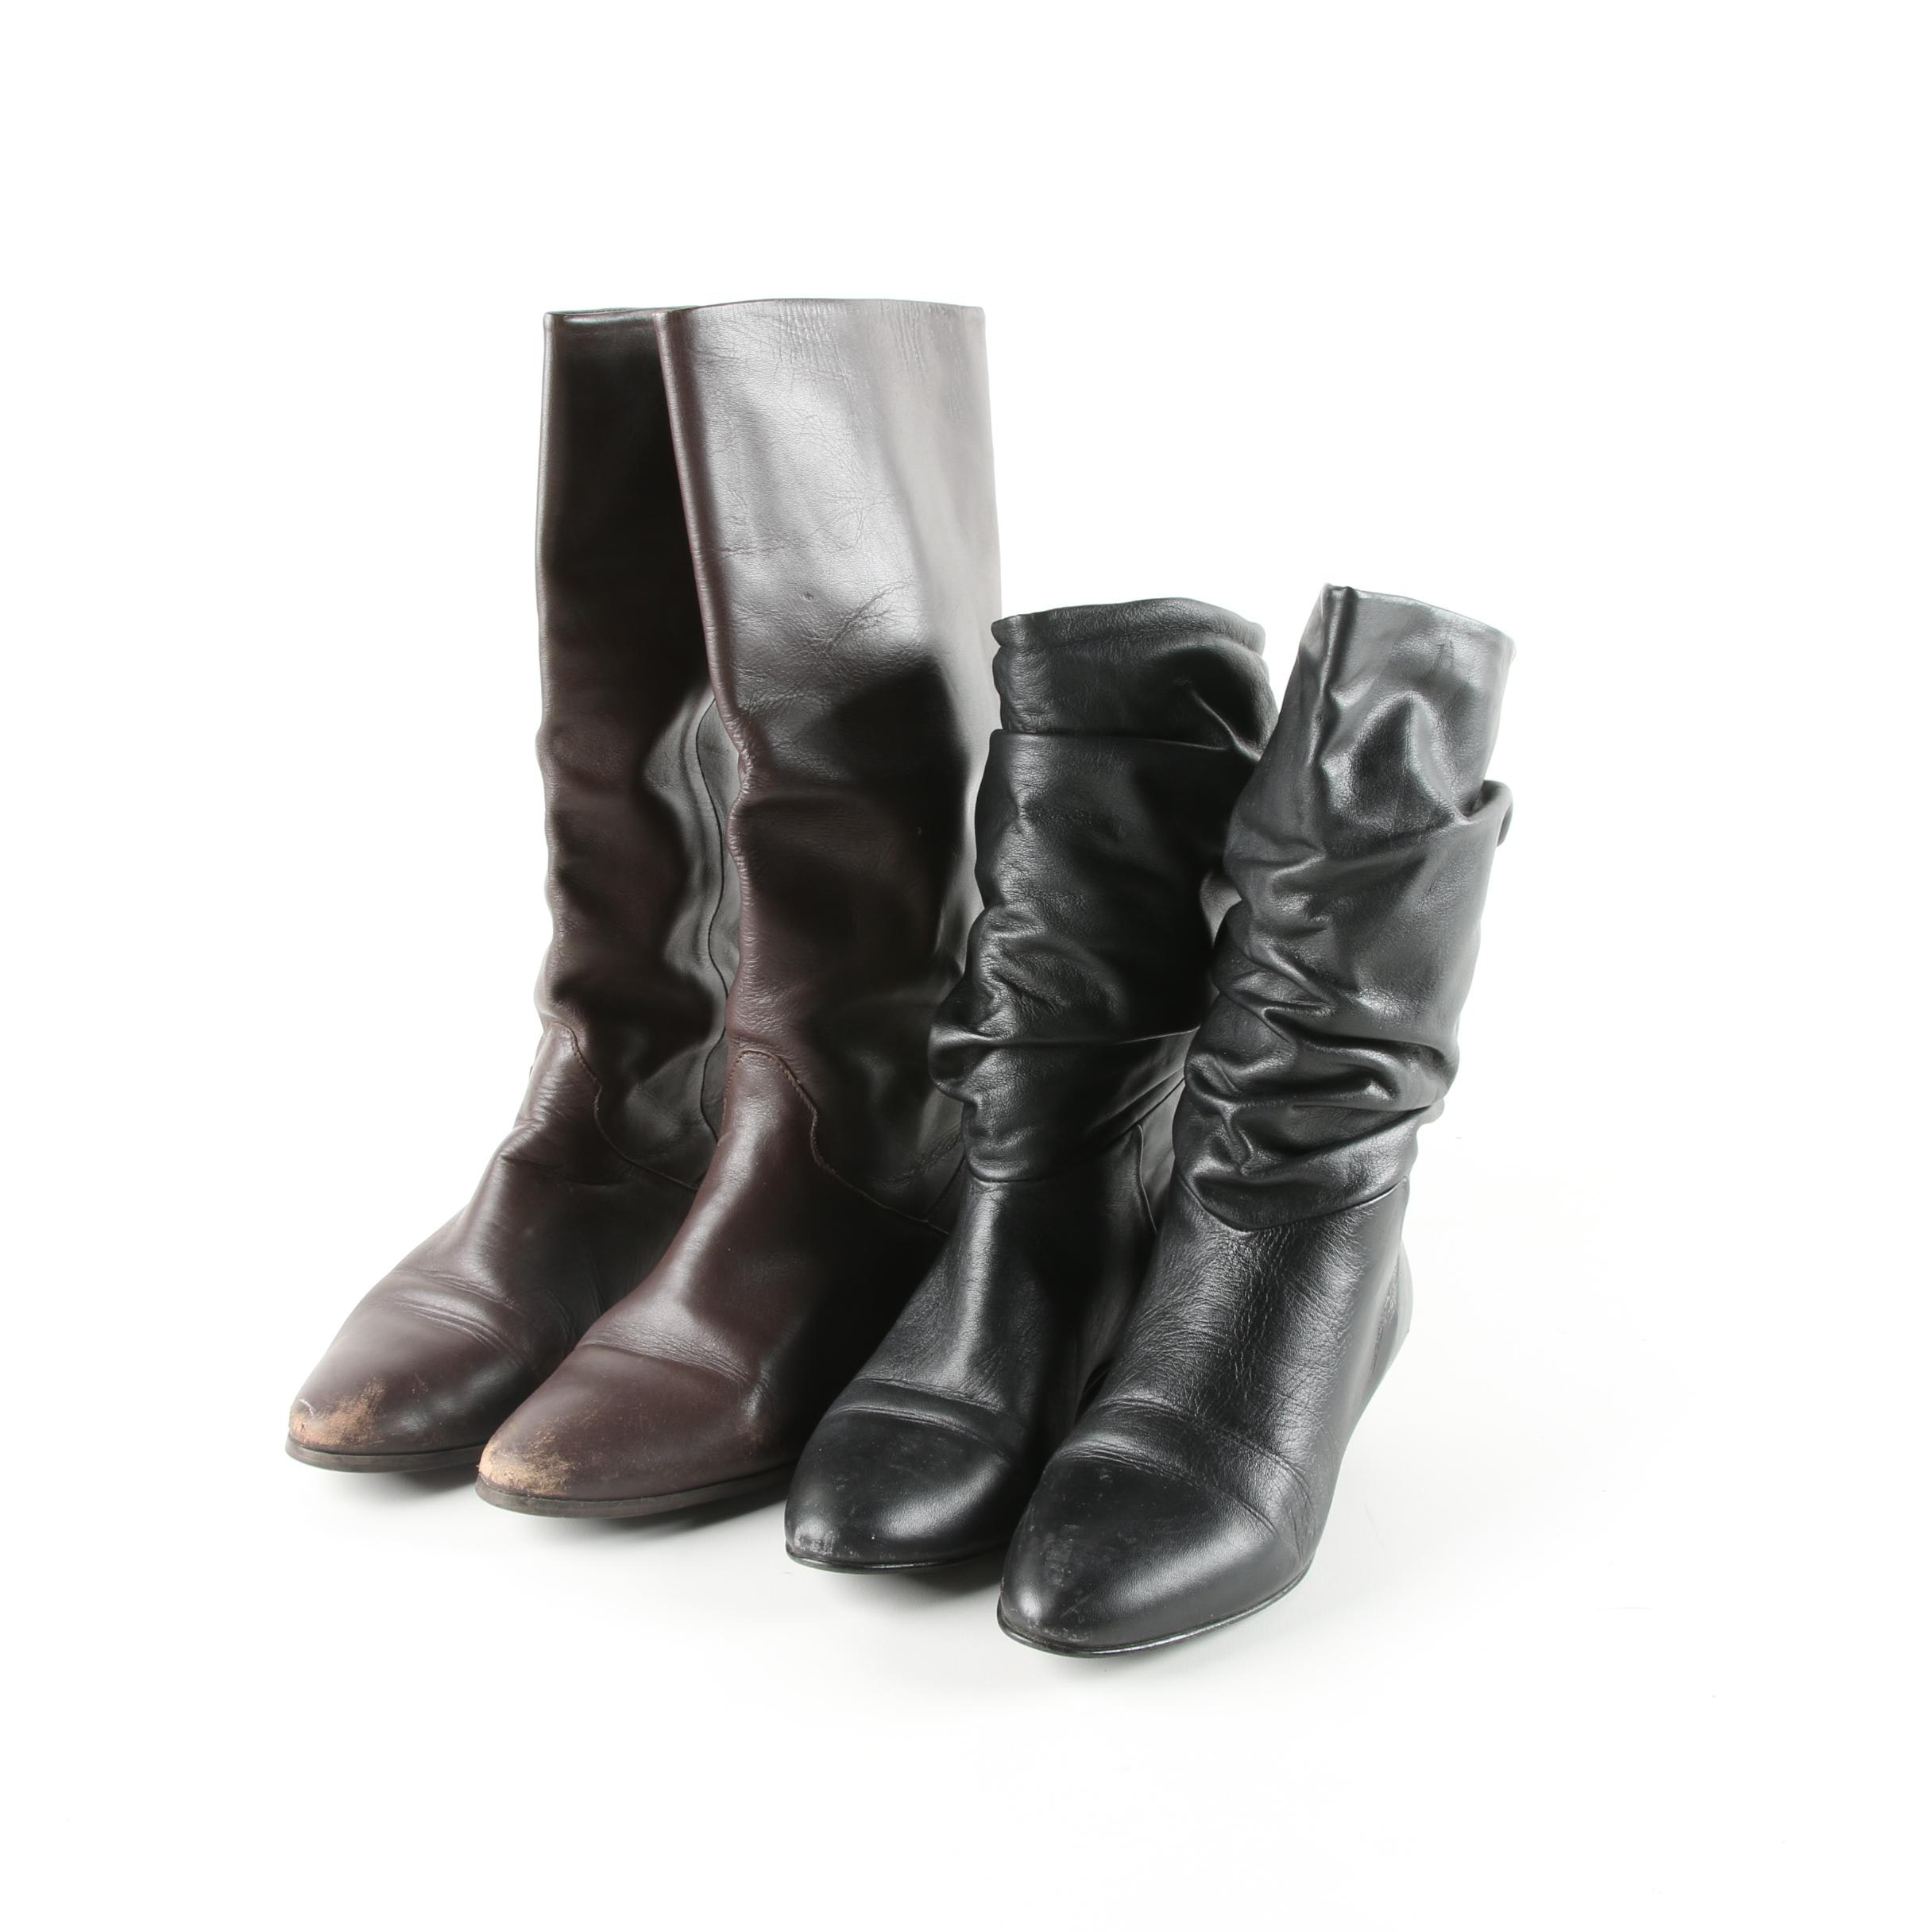 Women's Black and Brown Leather Boots